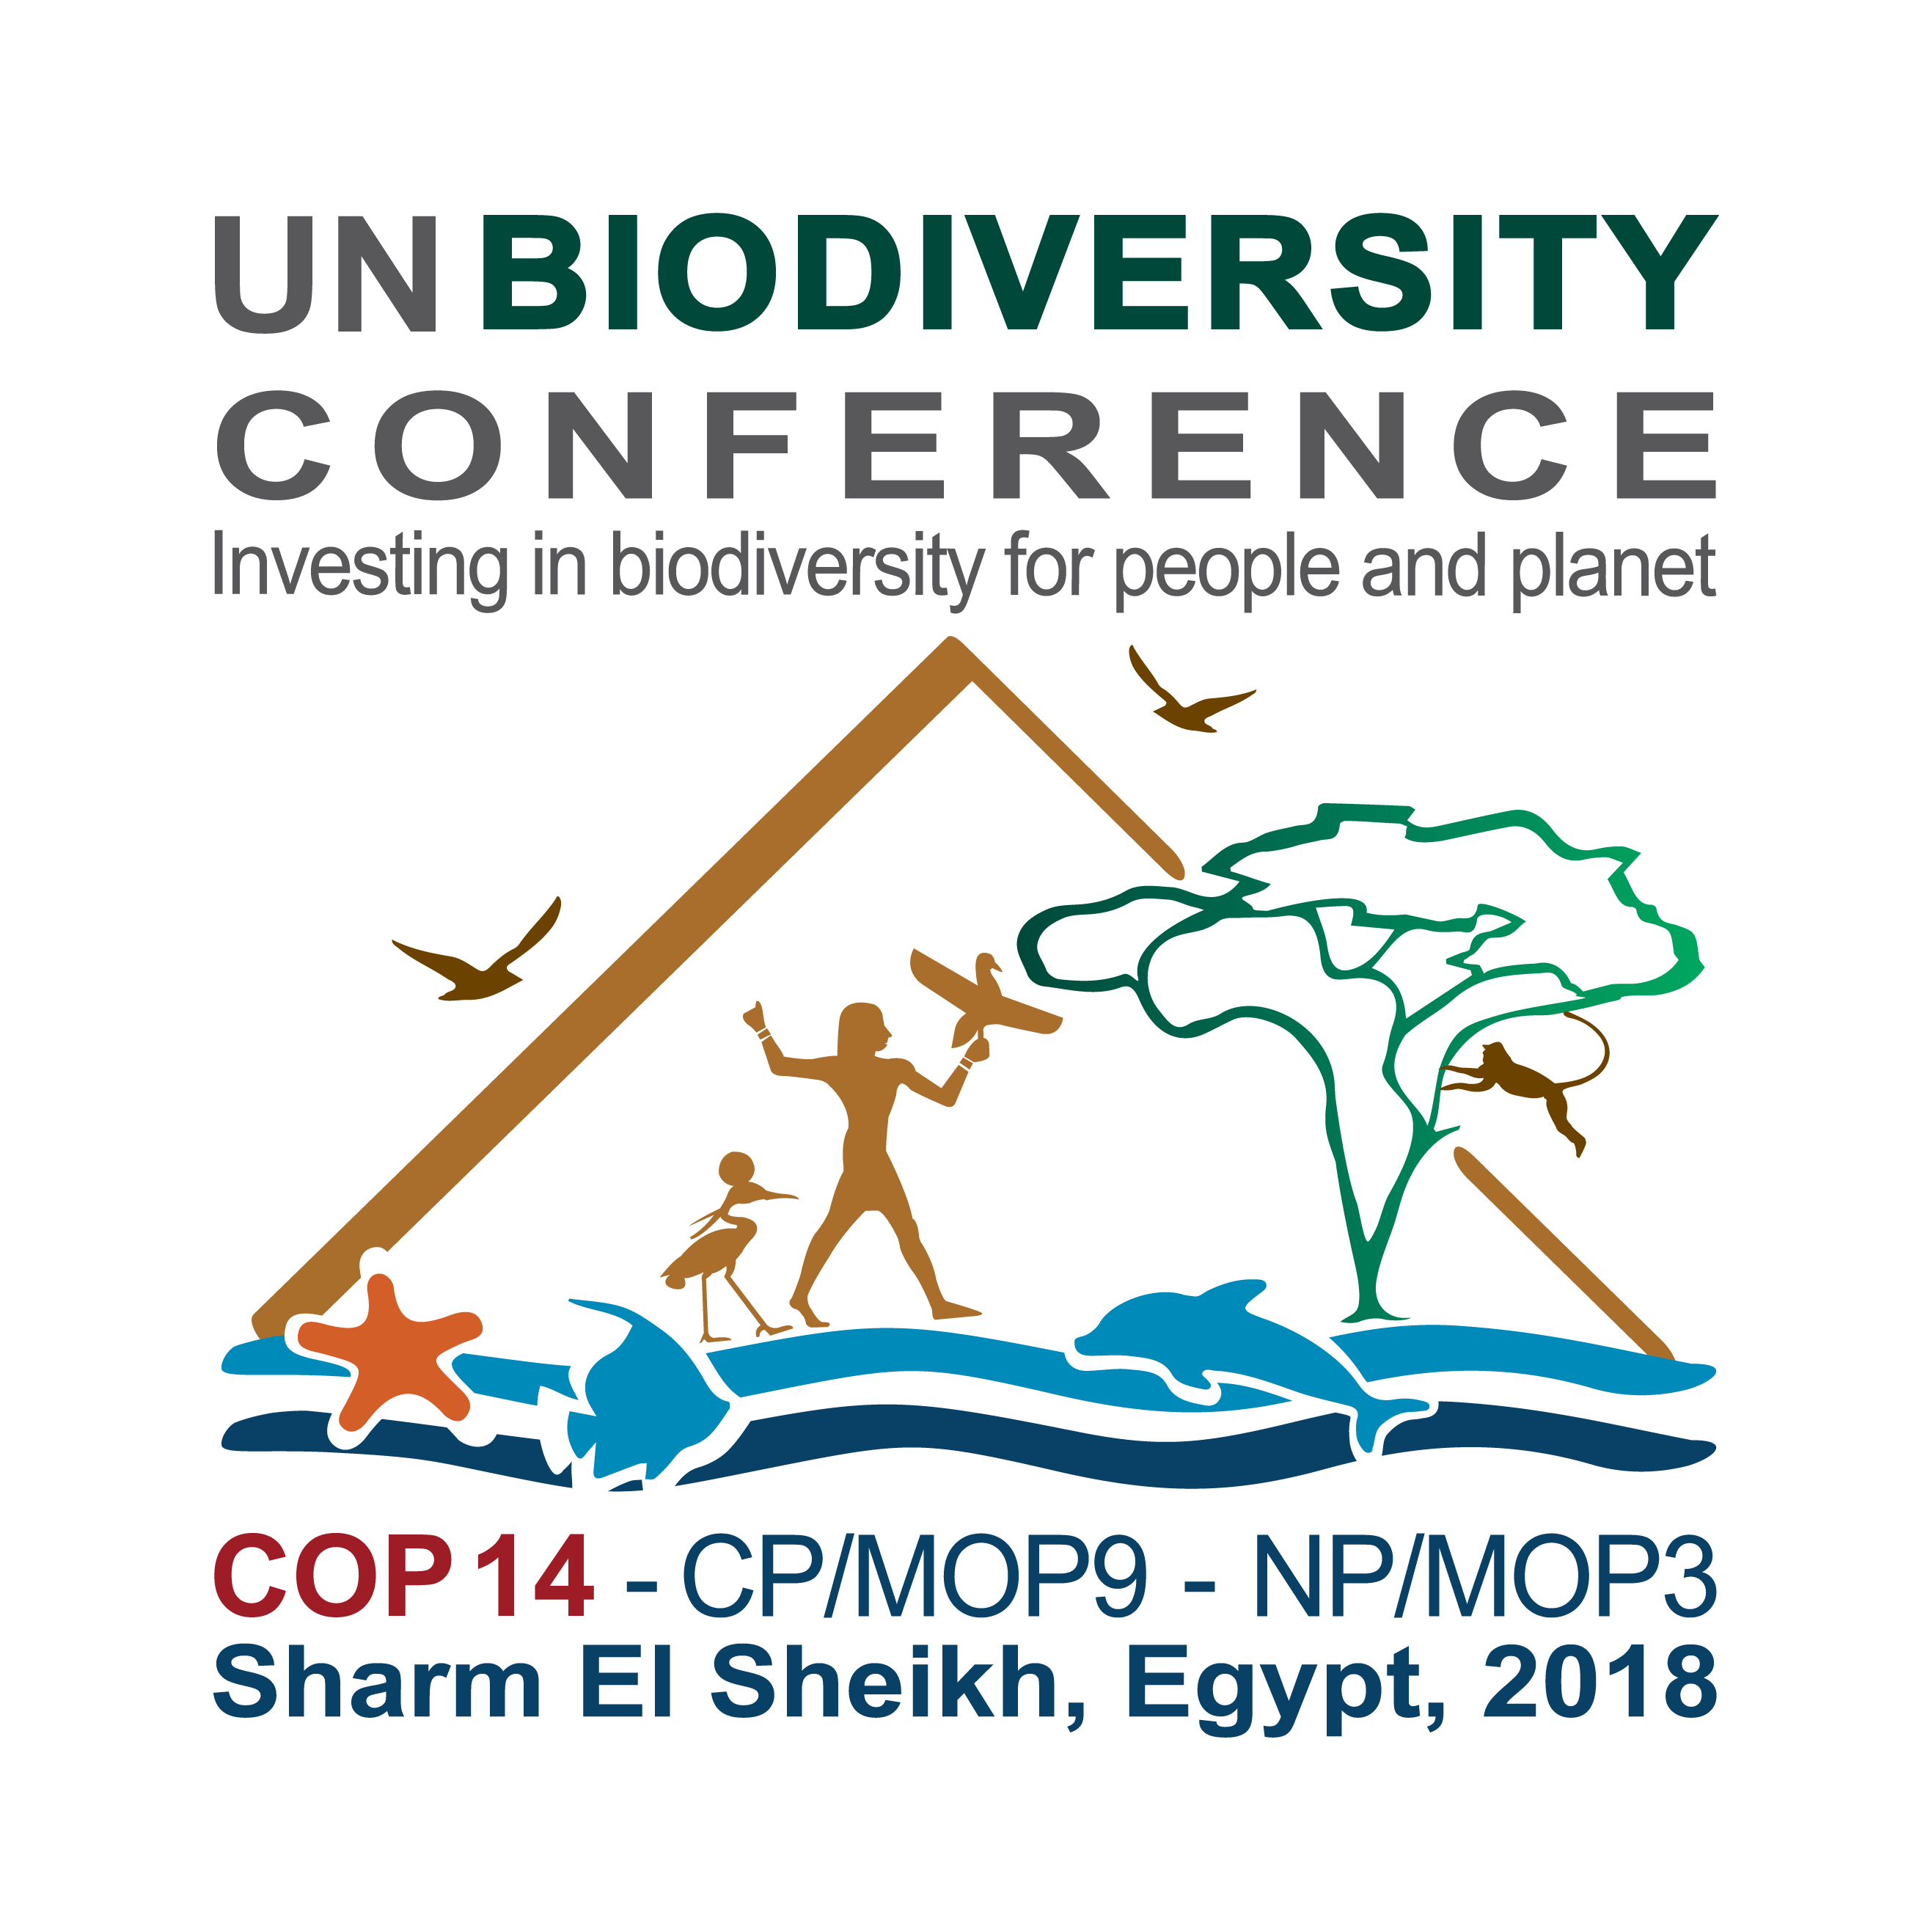 Fourteenth meeting of the Conference of the Parties to the Convention on Biological Diversity